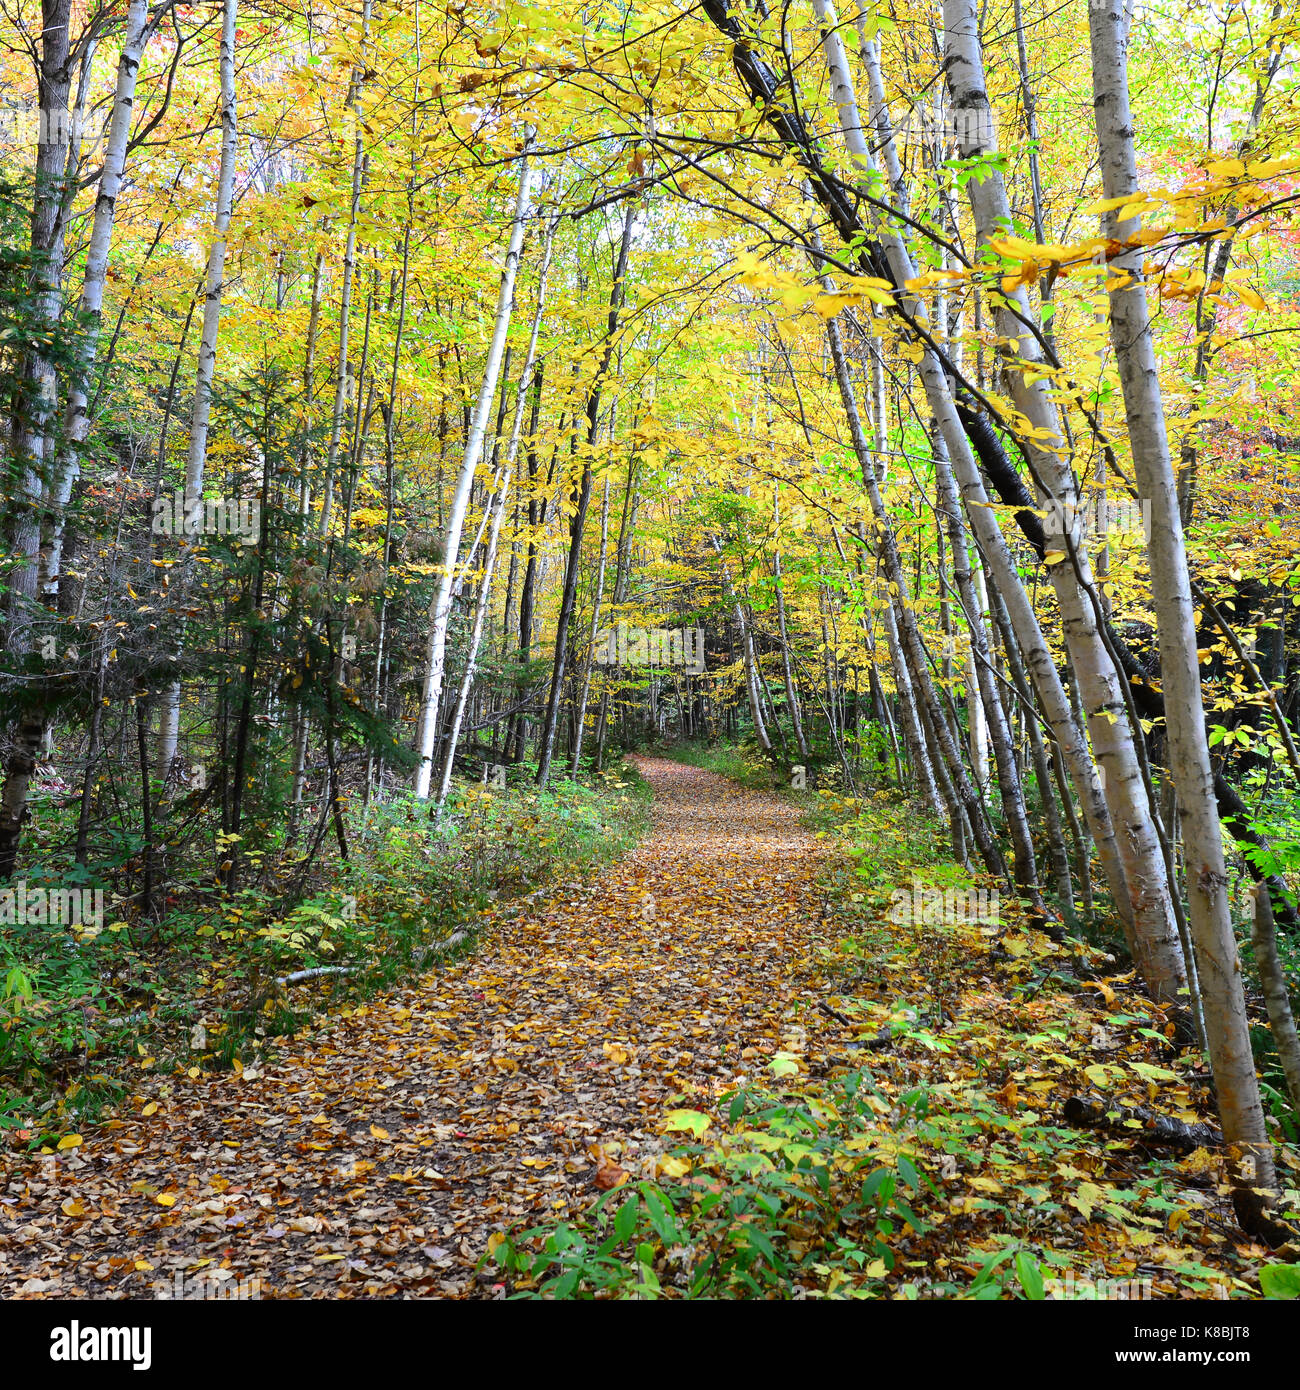 Forest trail through the Sacandaga Pathway in the Adirondack Park in autumn. - Stock Image